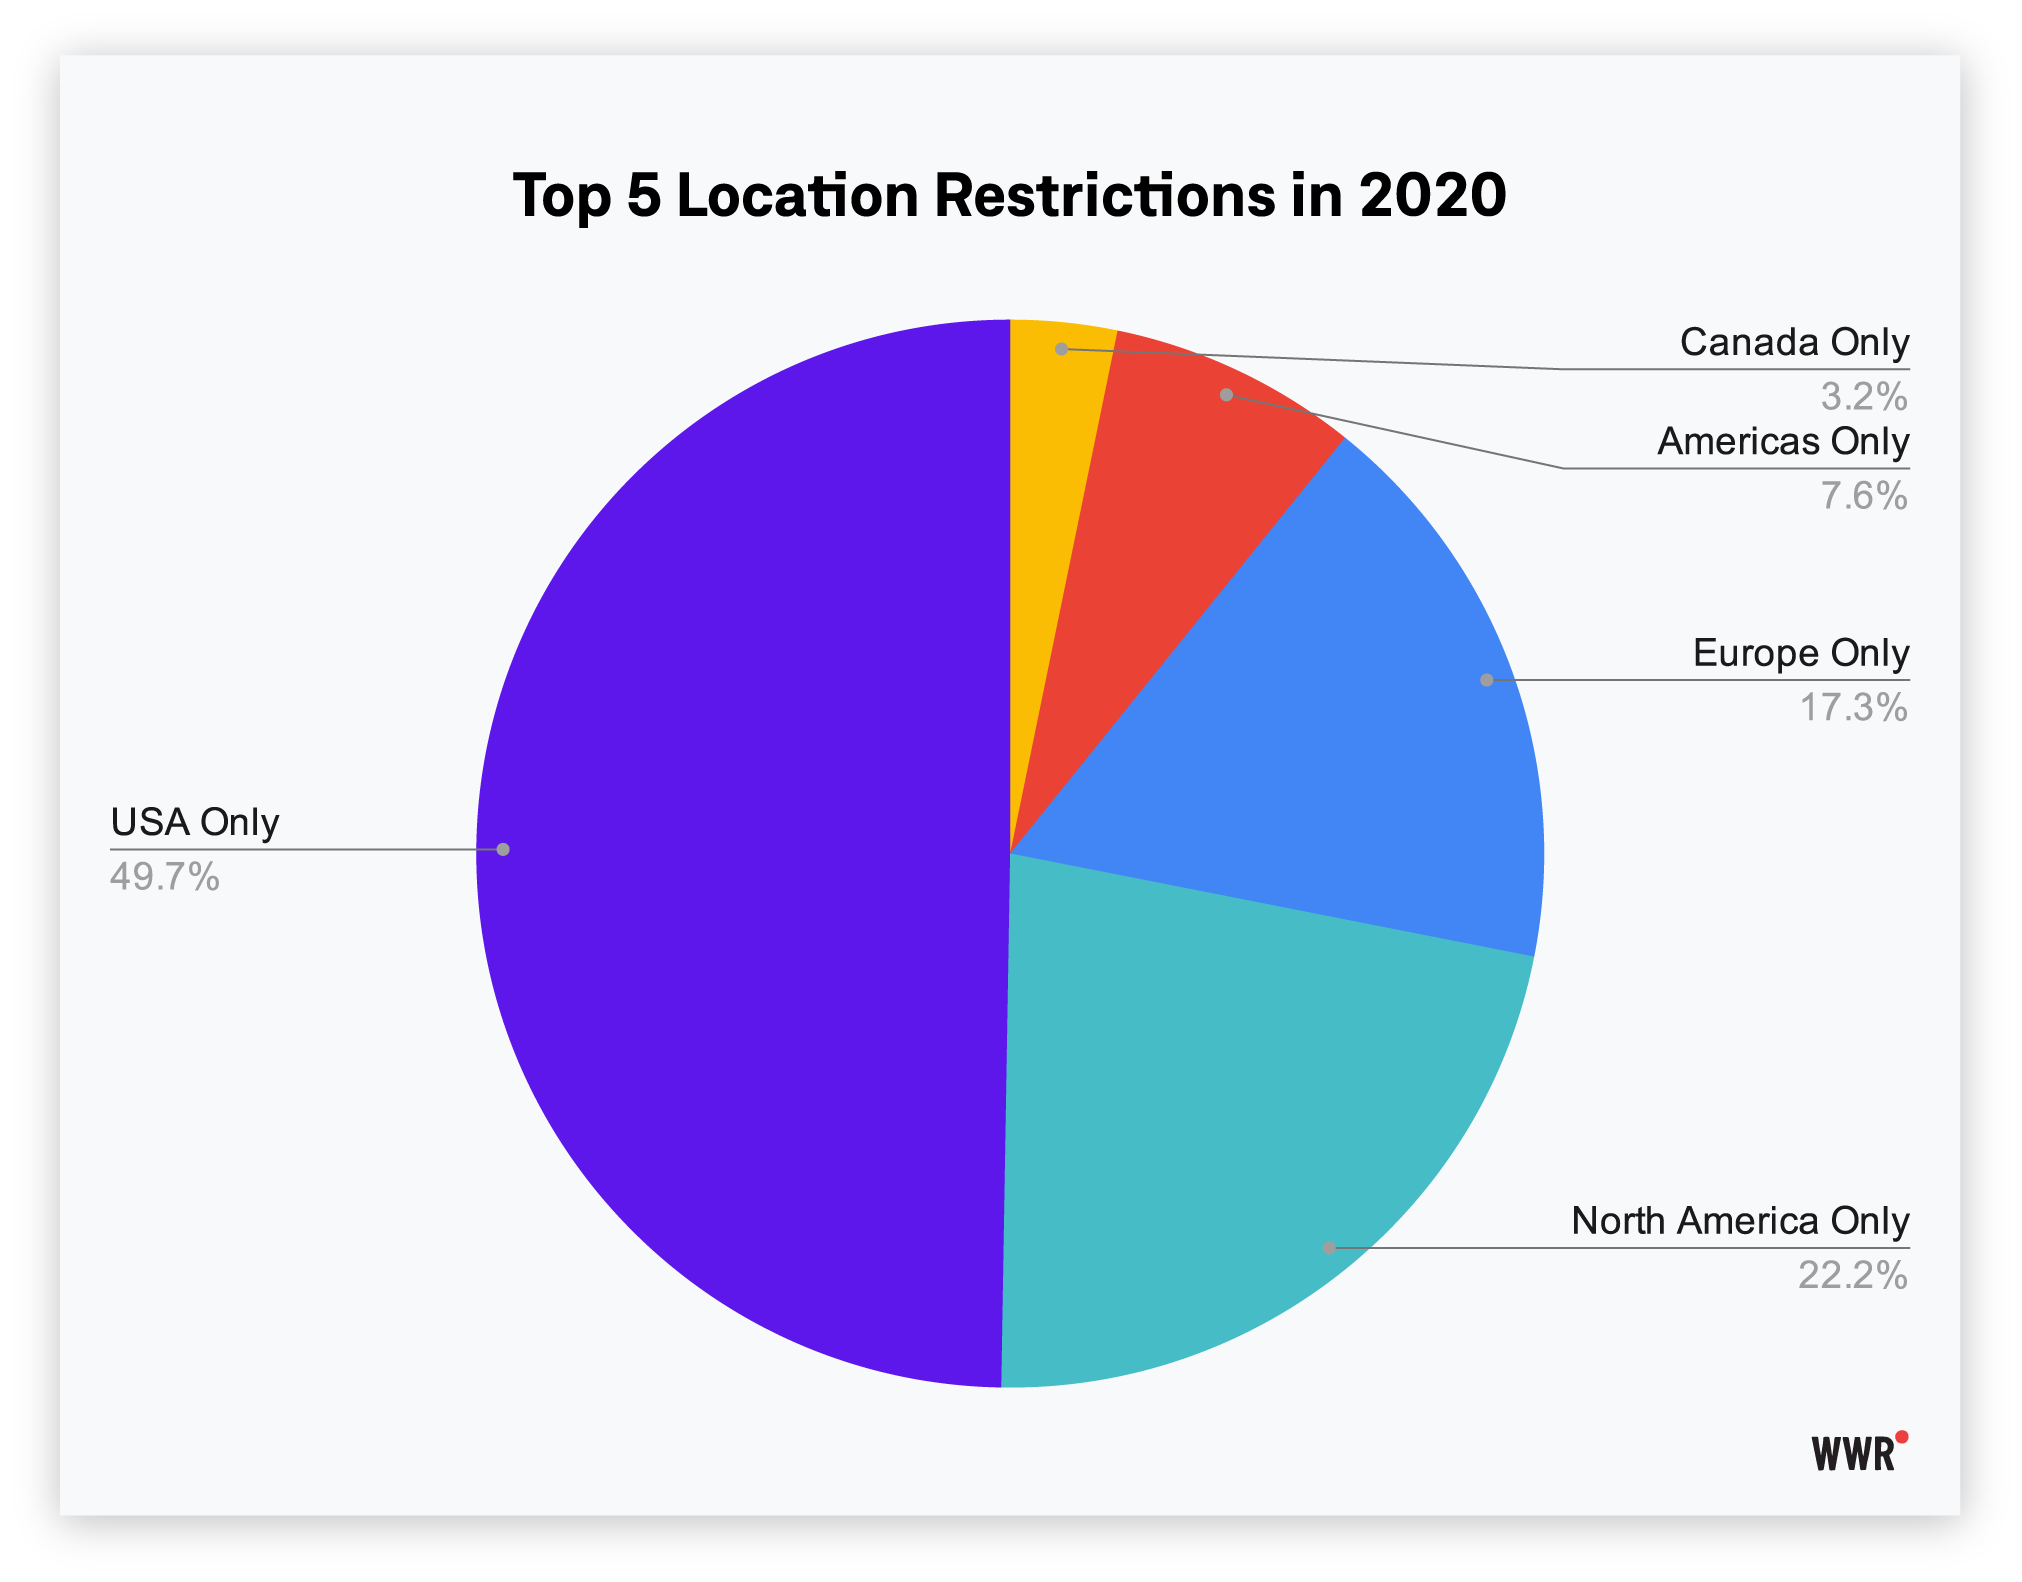 WWR-data-top-5-location-restrictions-2020,